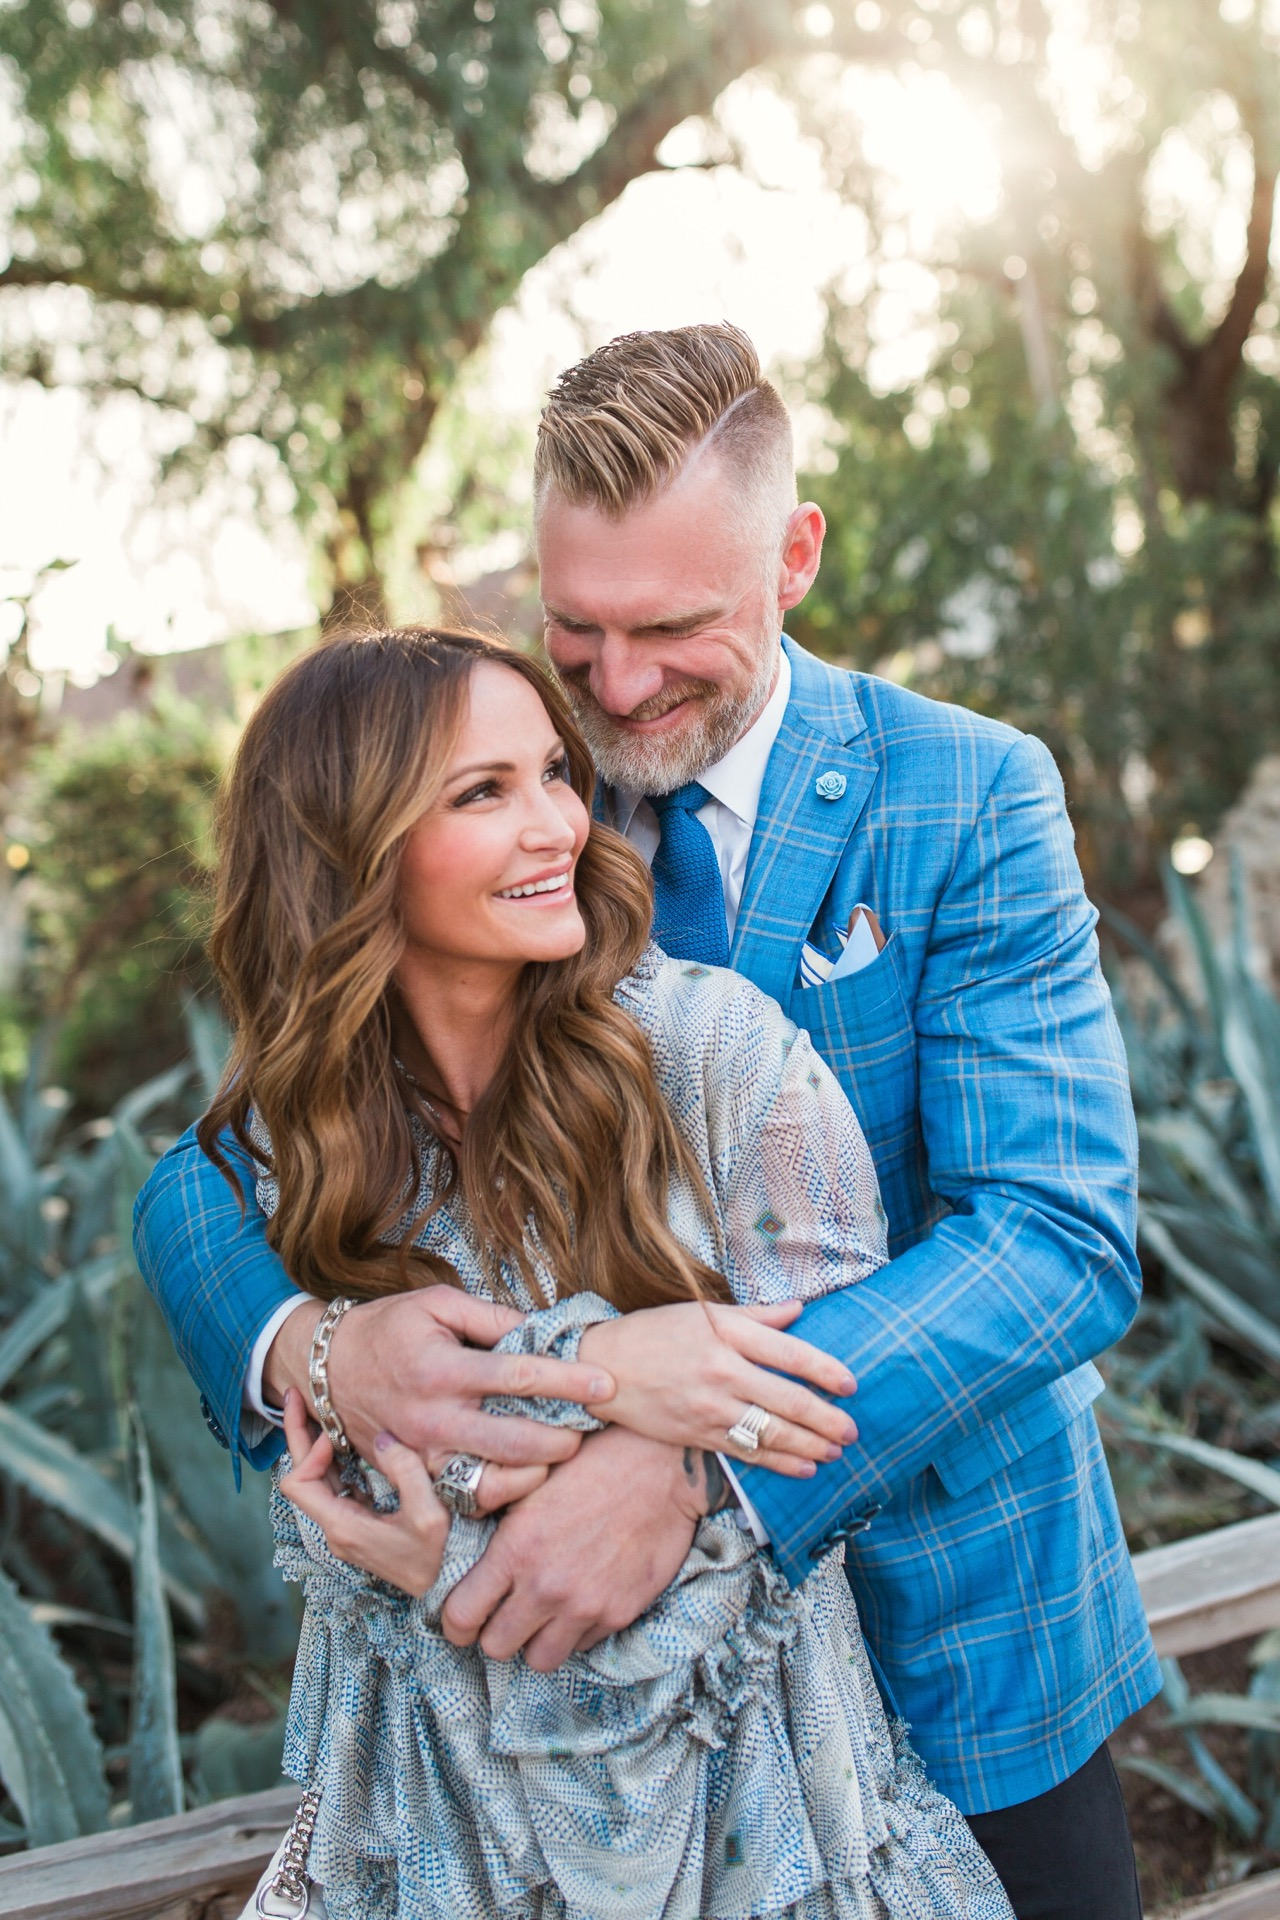 Date Your Wife Podcast Episode 4 with Danielle K. White and Garrett J. White